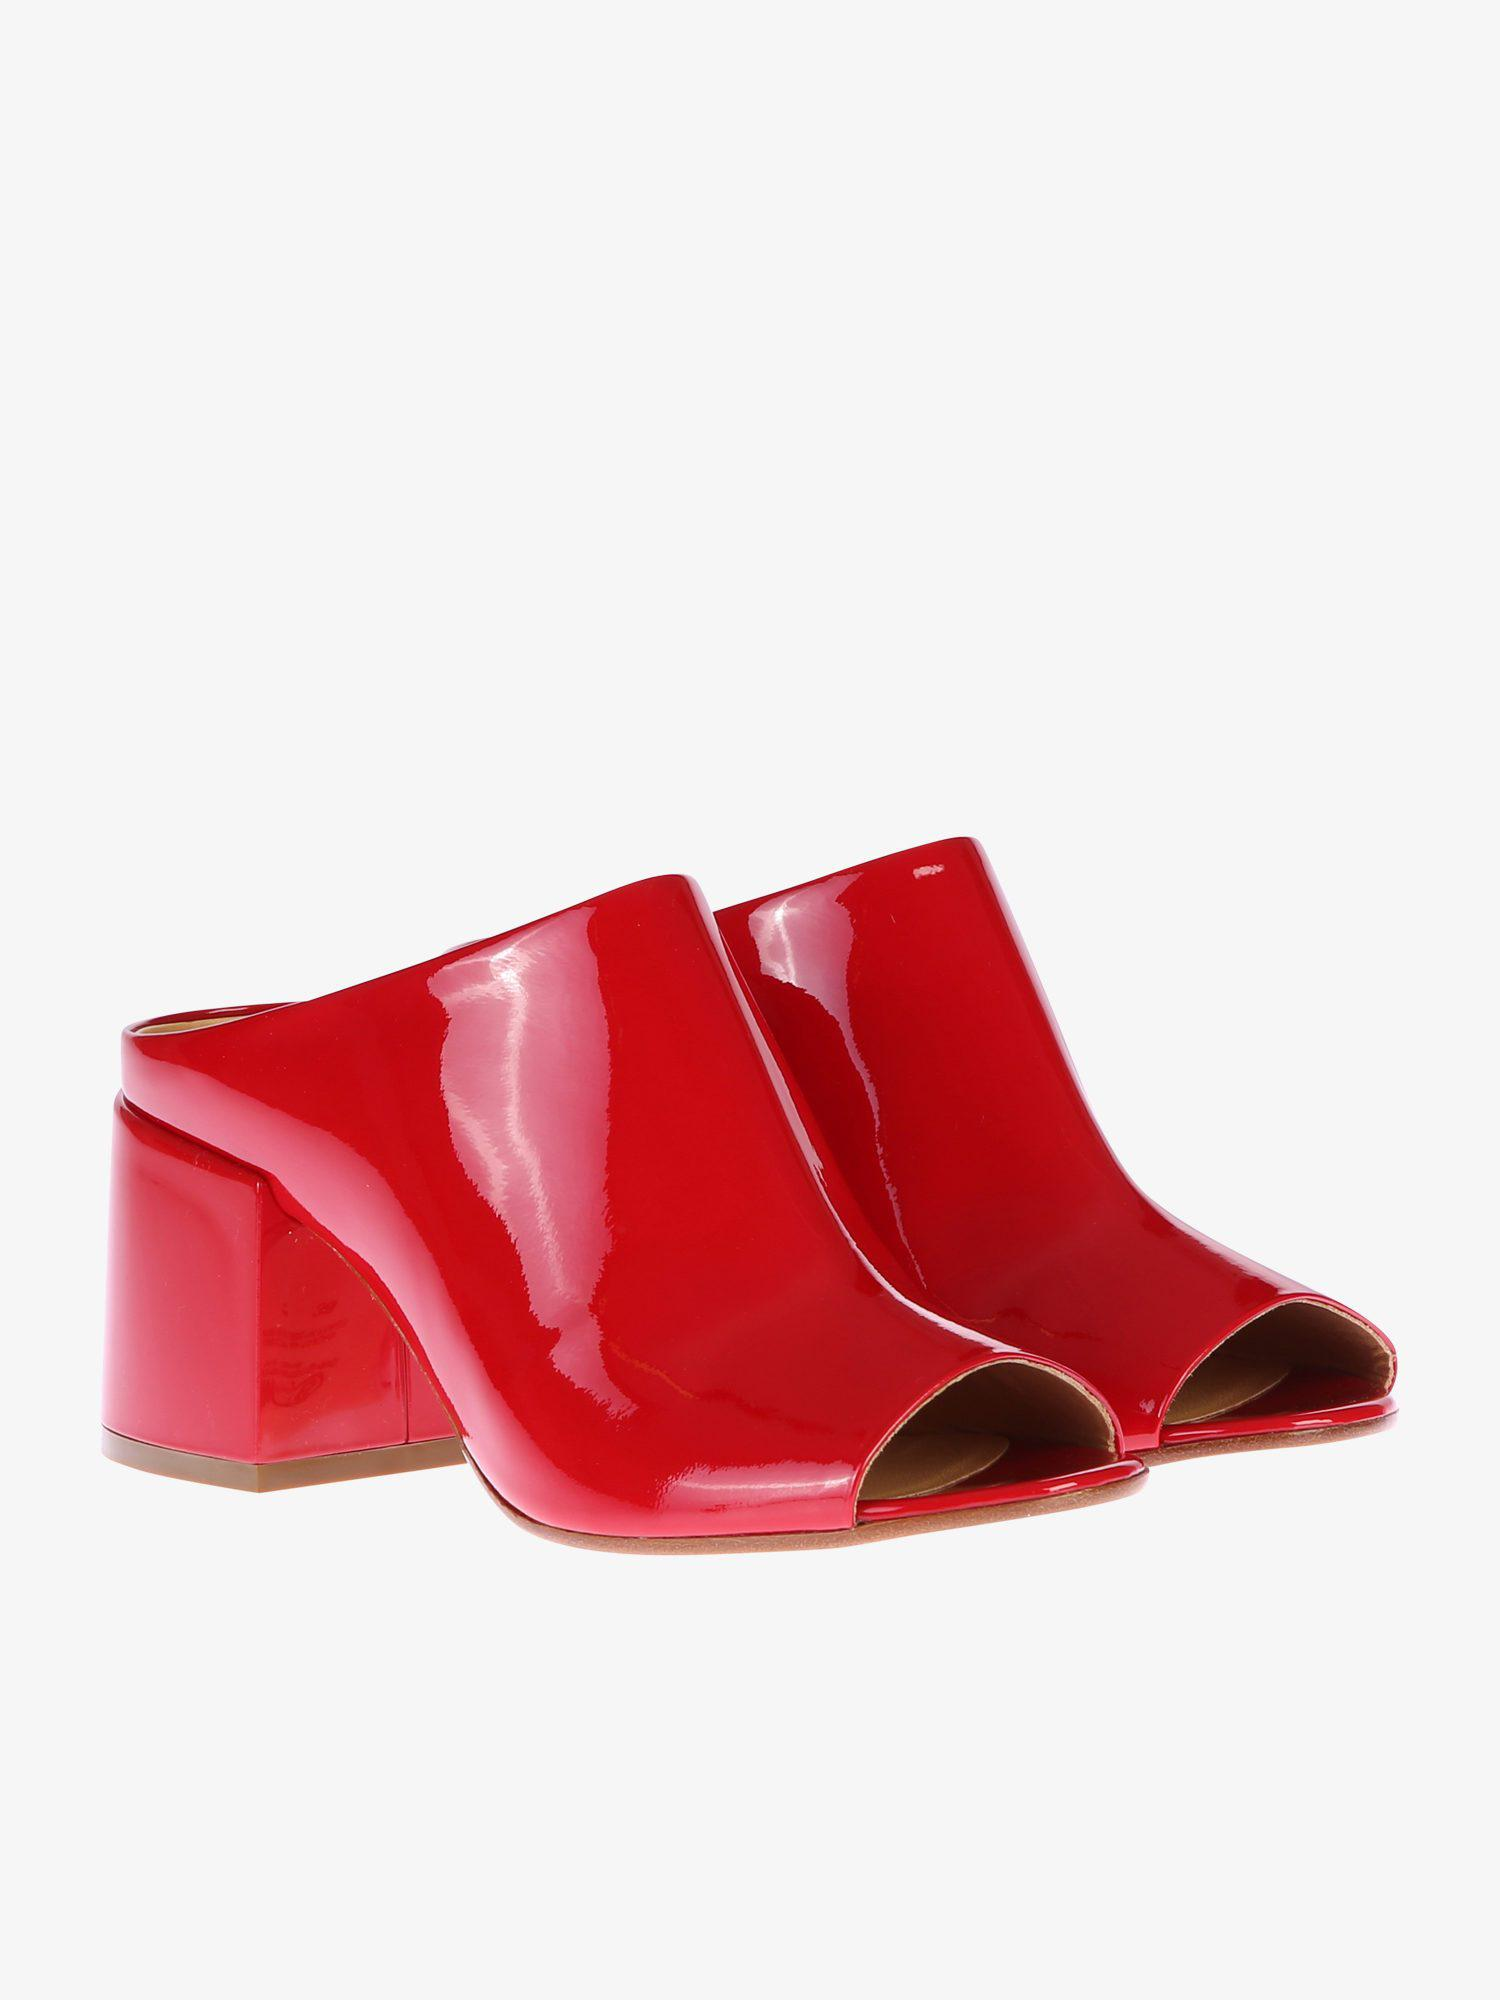 39ec29778c26 Lyst - Mm6 By Maison Martin Margiela Patent Mules in Red